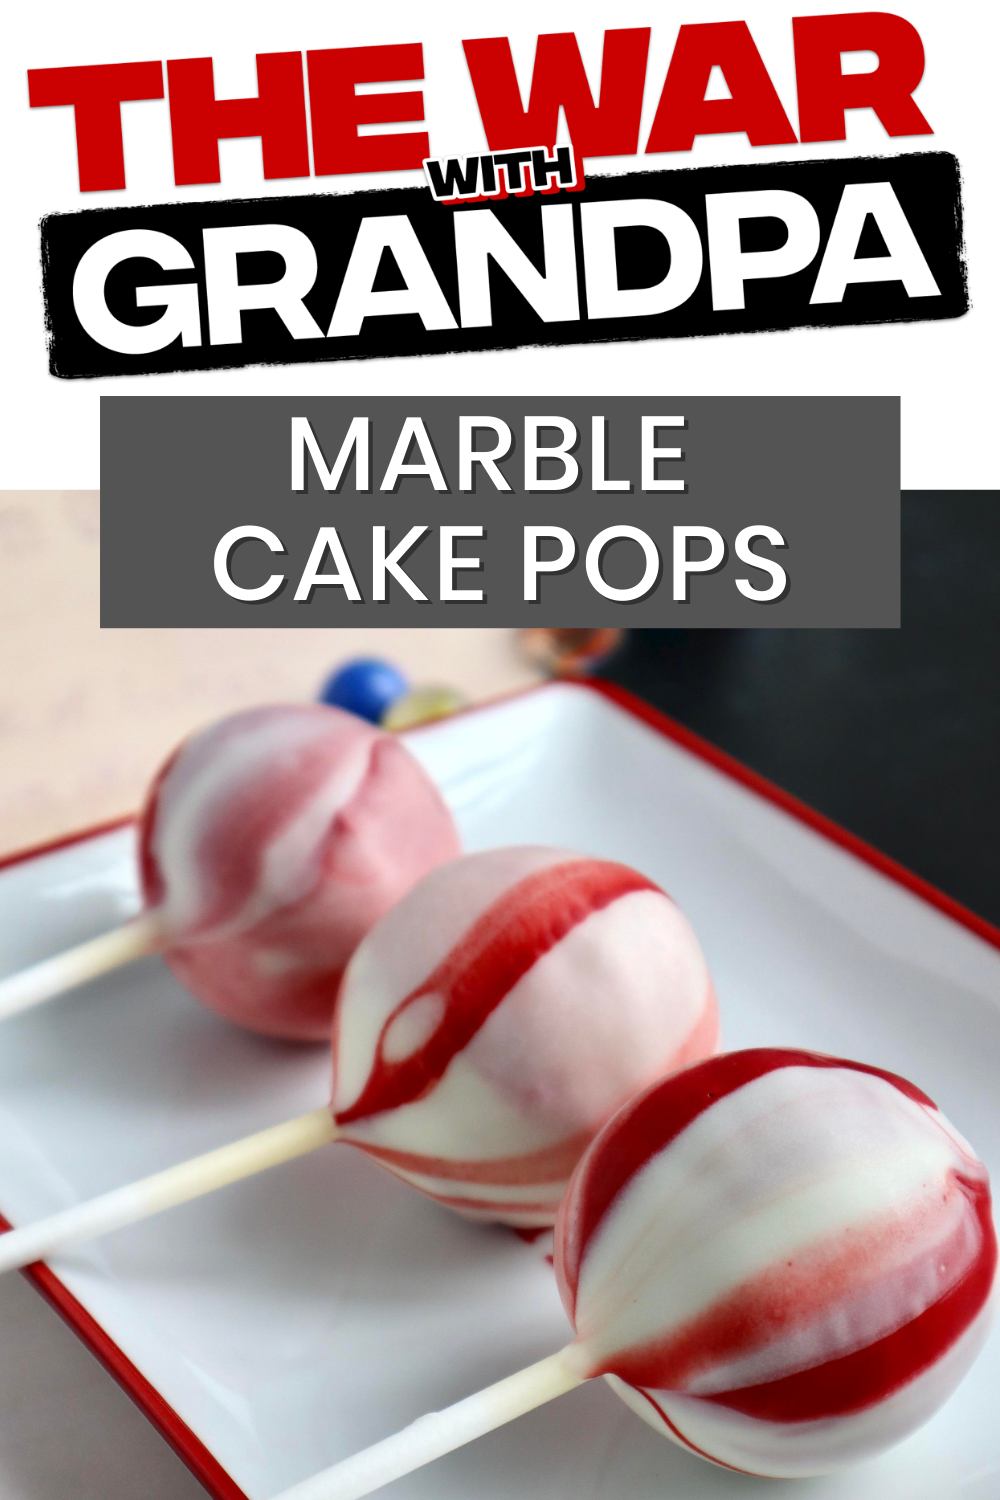 Marble Cake Pops Inspired by The War with Grandpa –